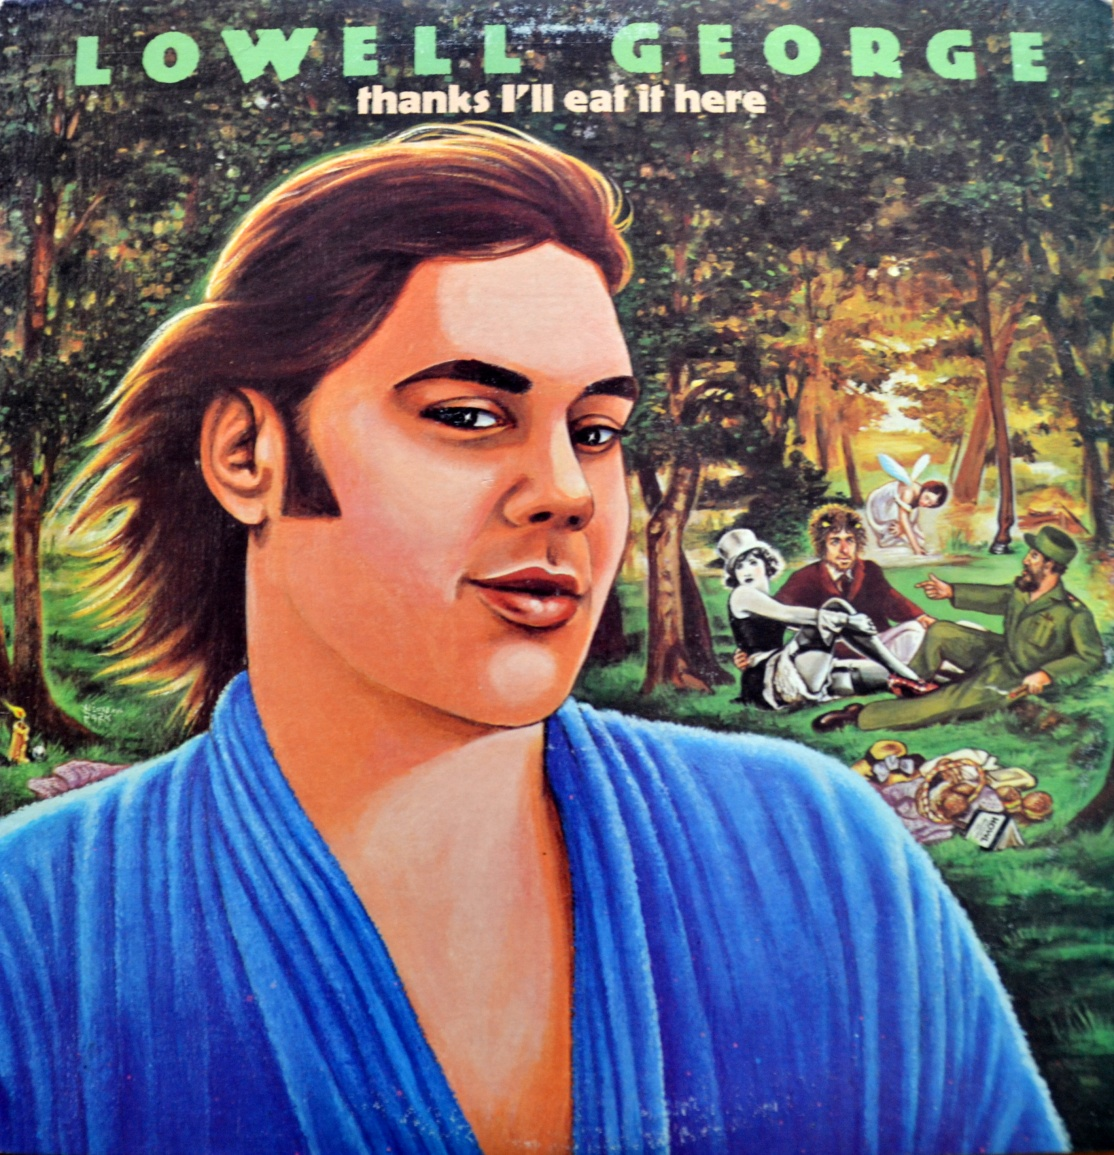 lowell george thanks